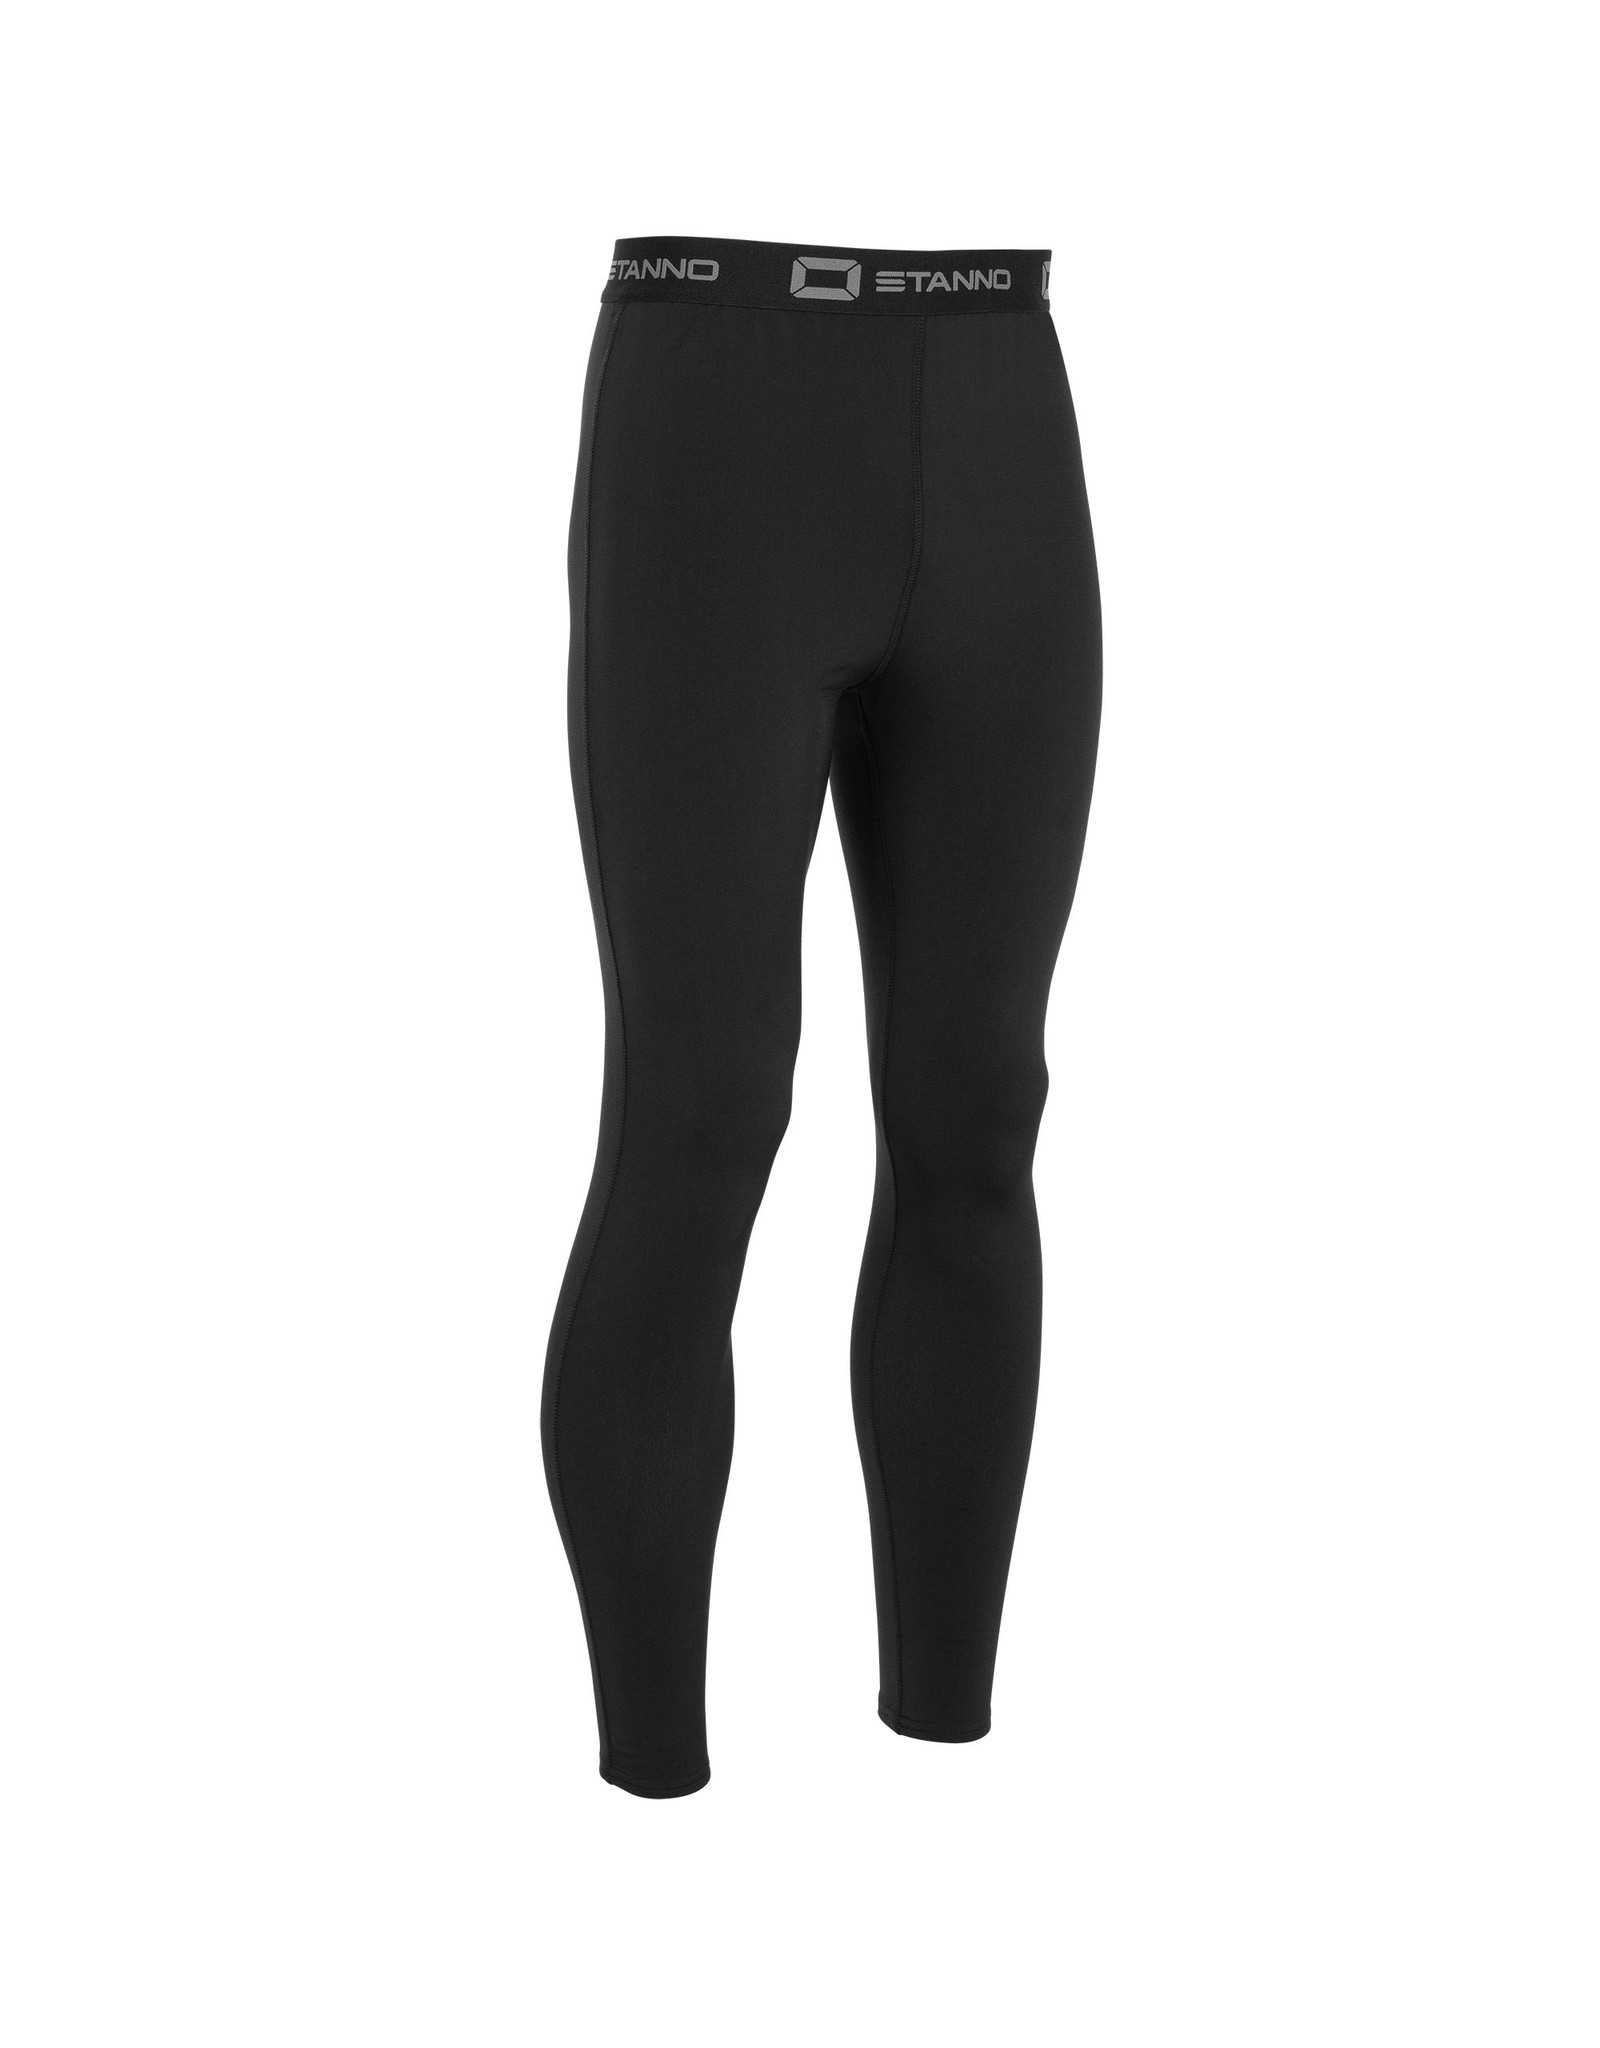 Stanno Thermo Pants